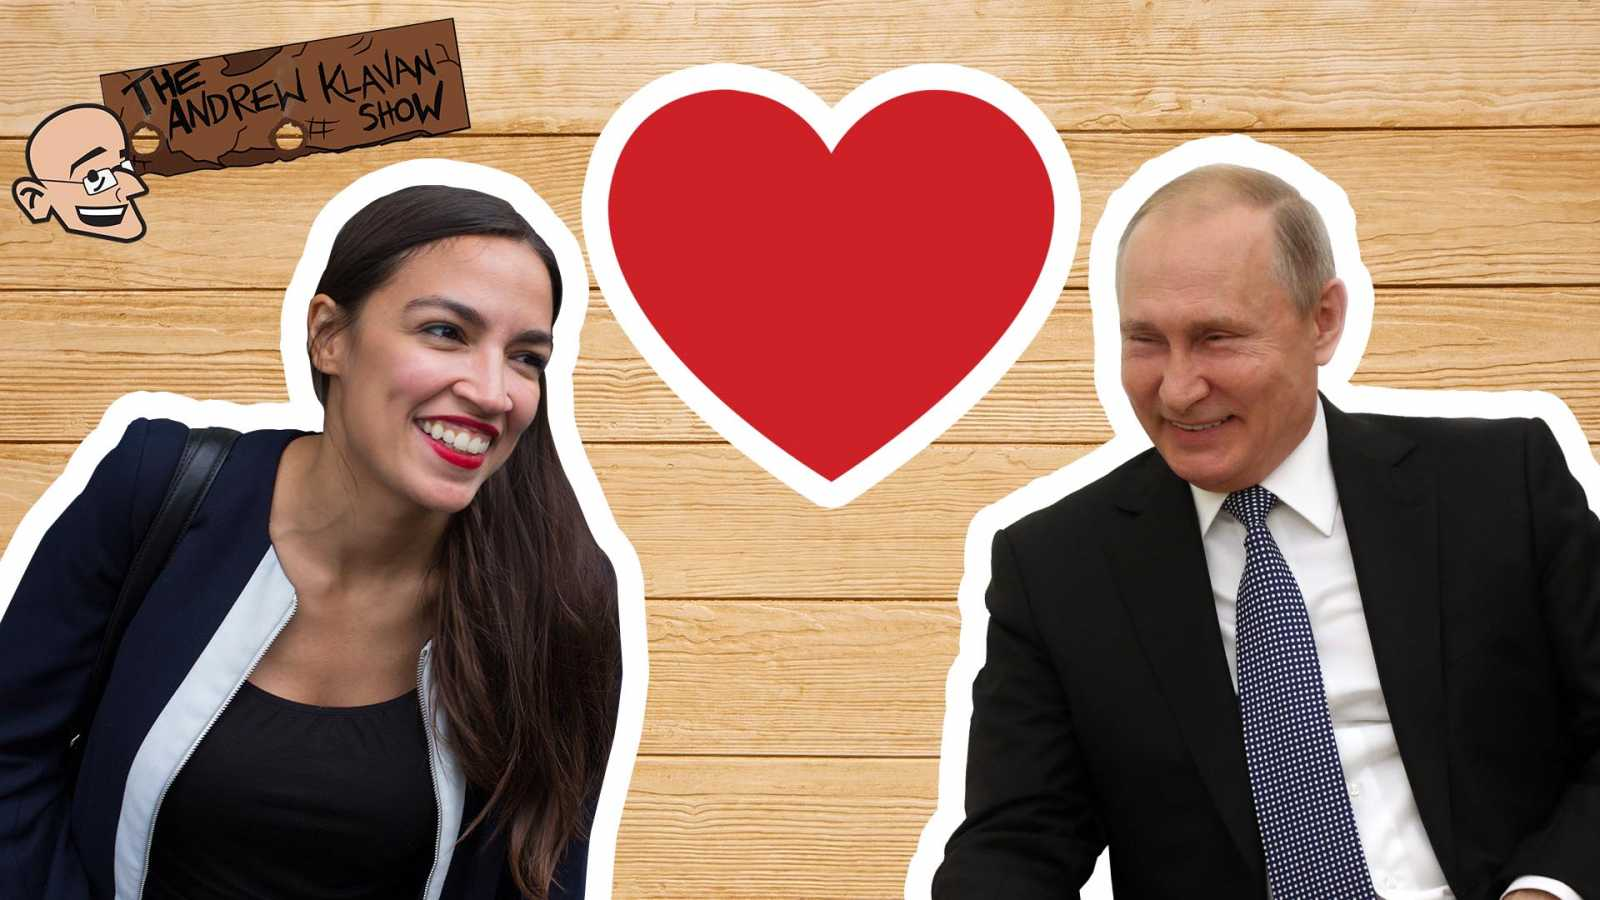 The Andrew Klavan Show on Daily Wire podcast: Putin's True Friends are on the Left (image)